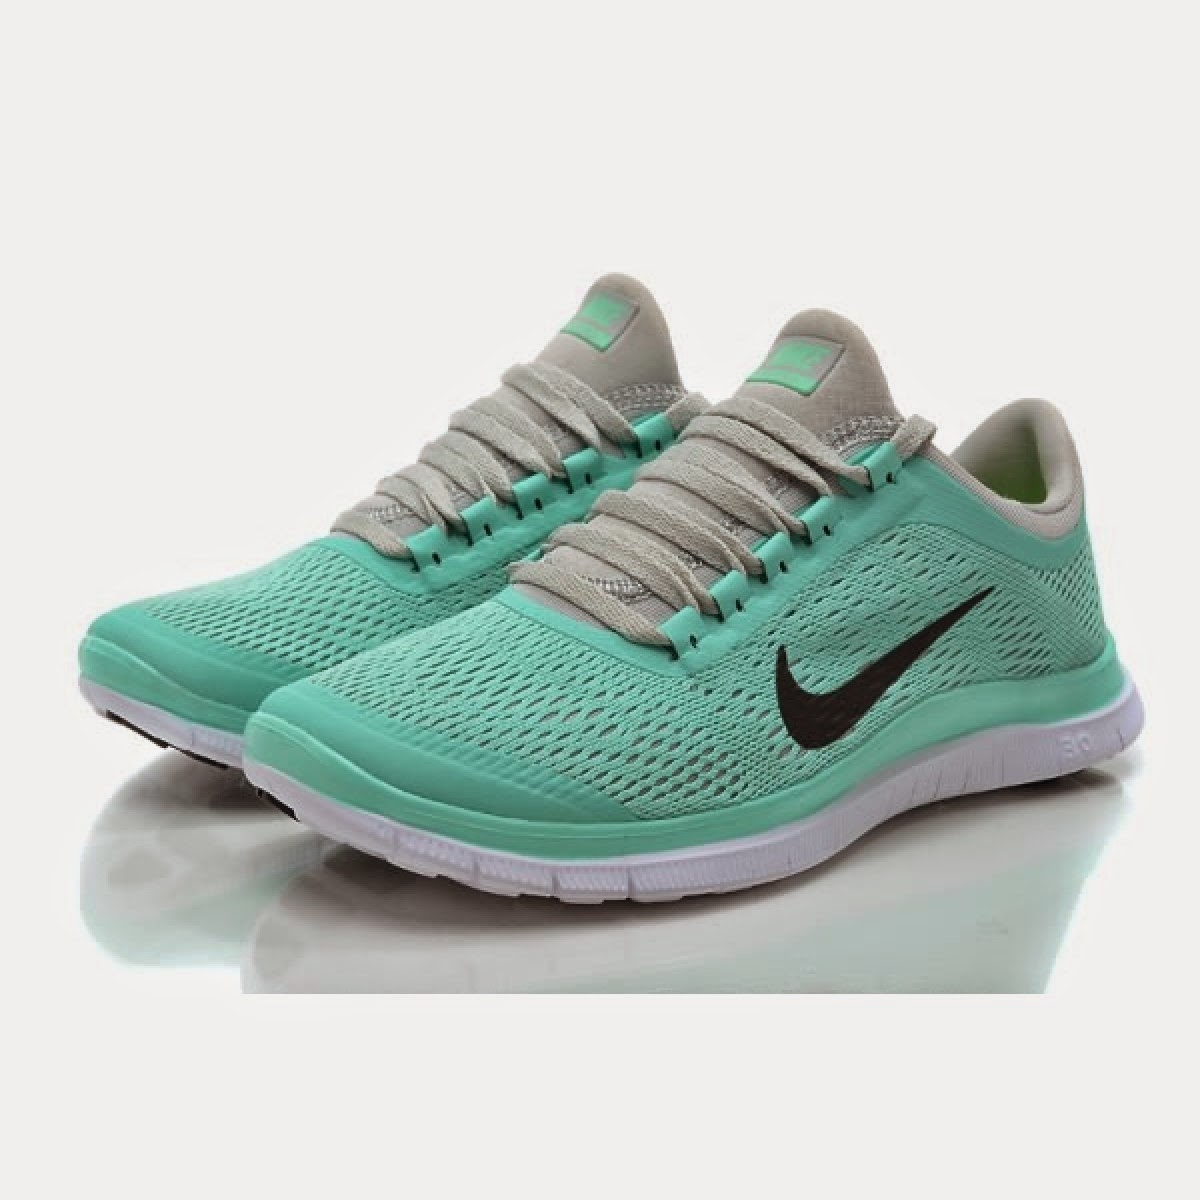 Nike Free 30 V5 Womens Running Shoes Crystal Mint For Sale